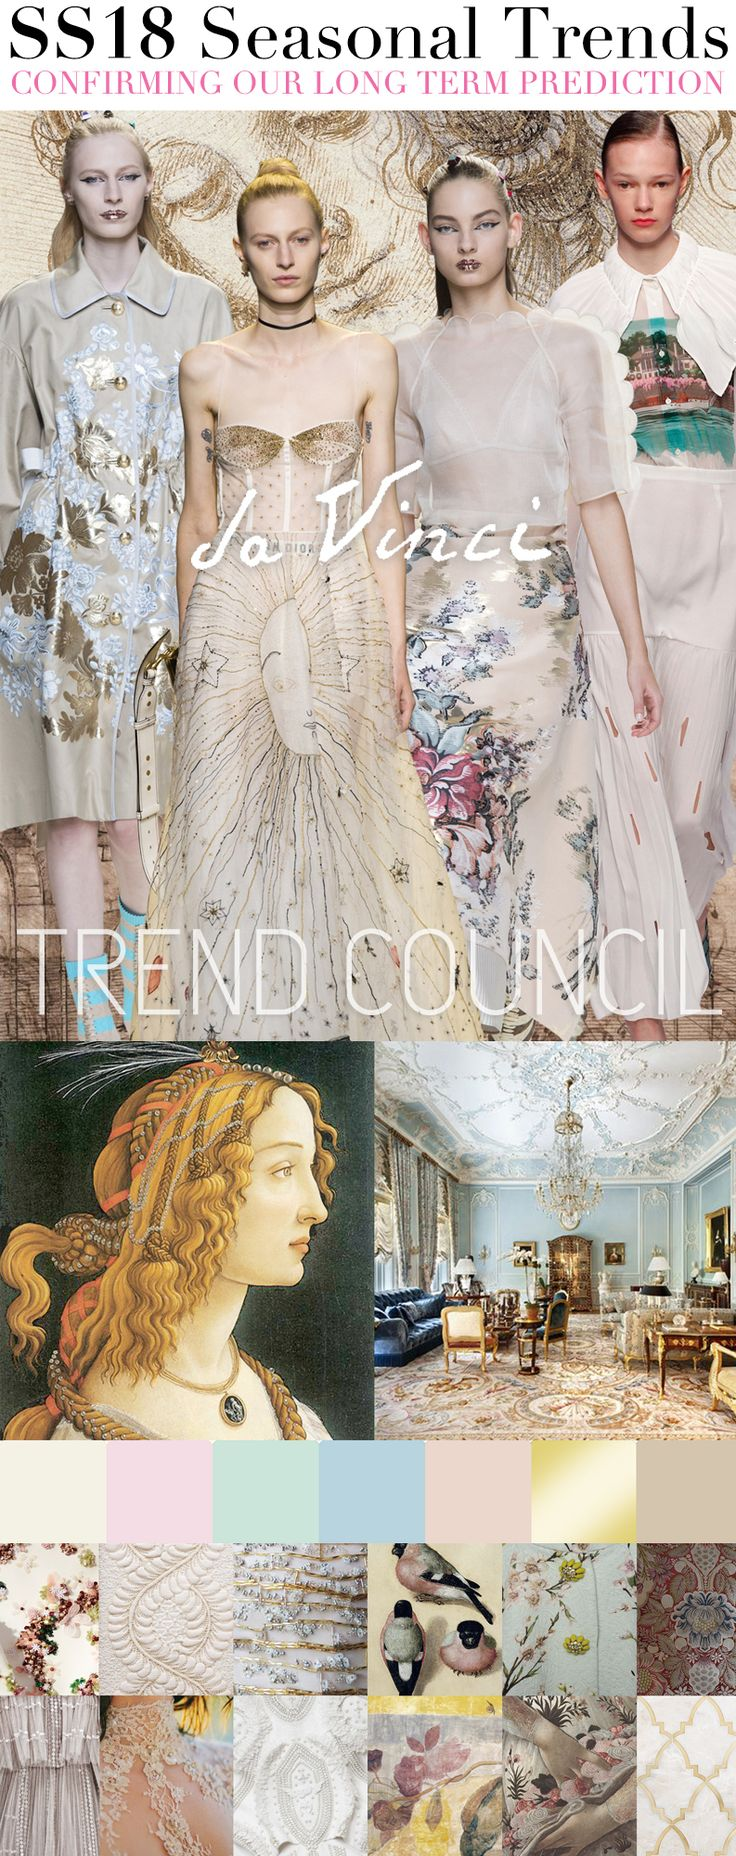 Ss18 trend council